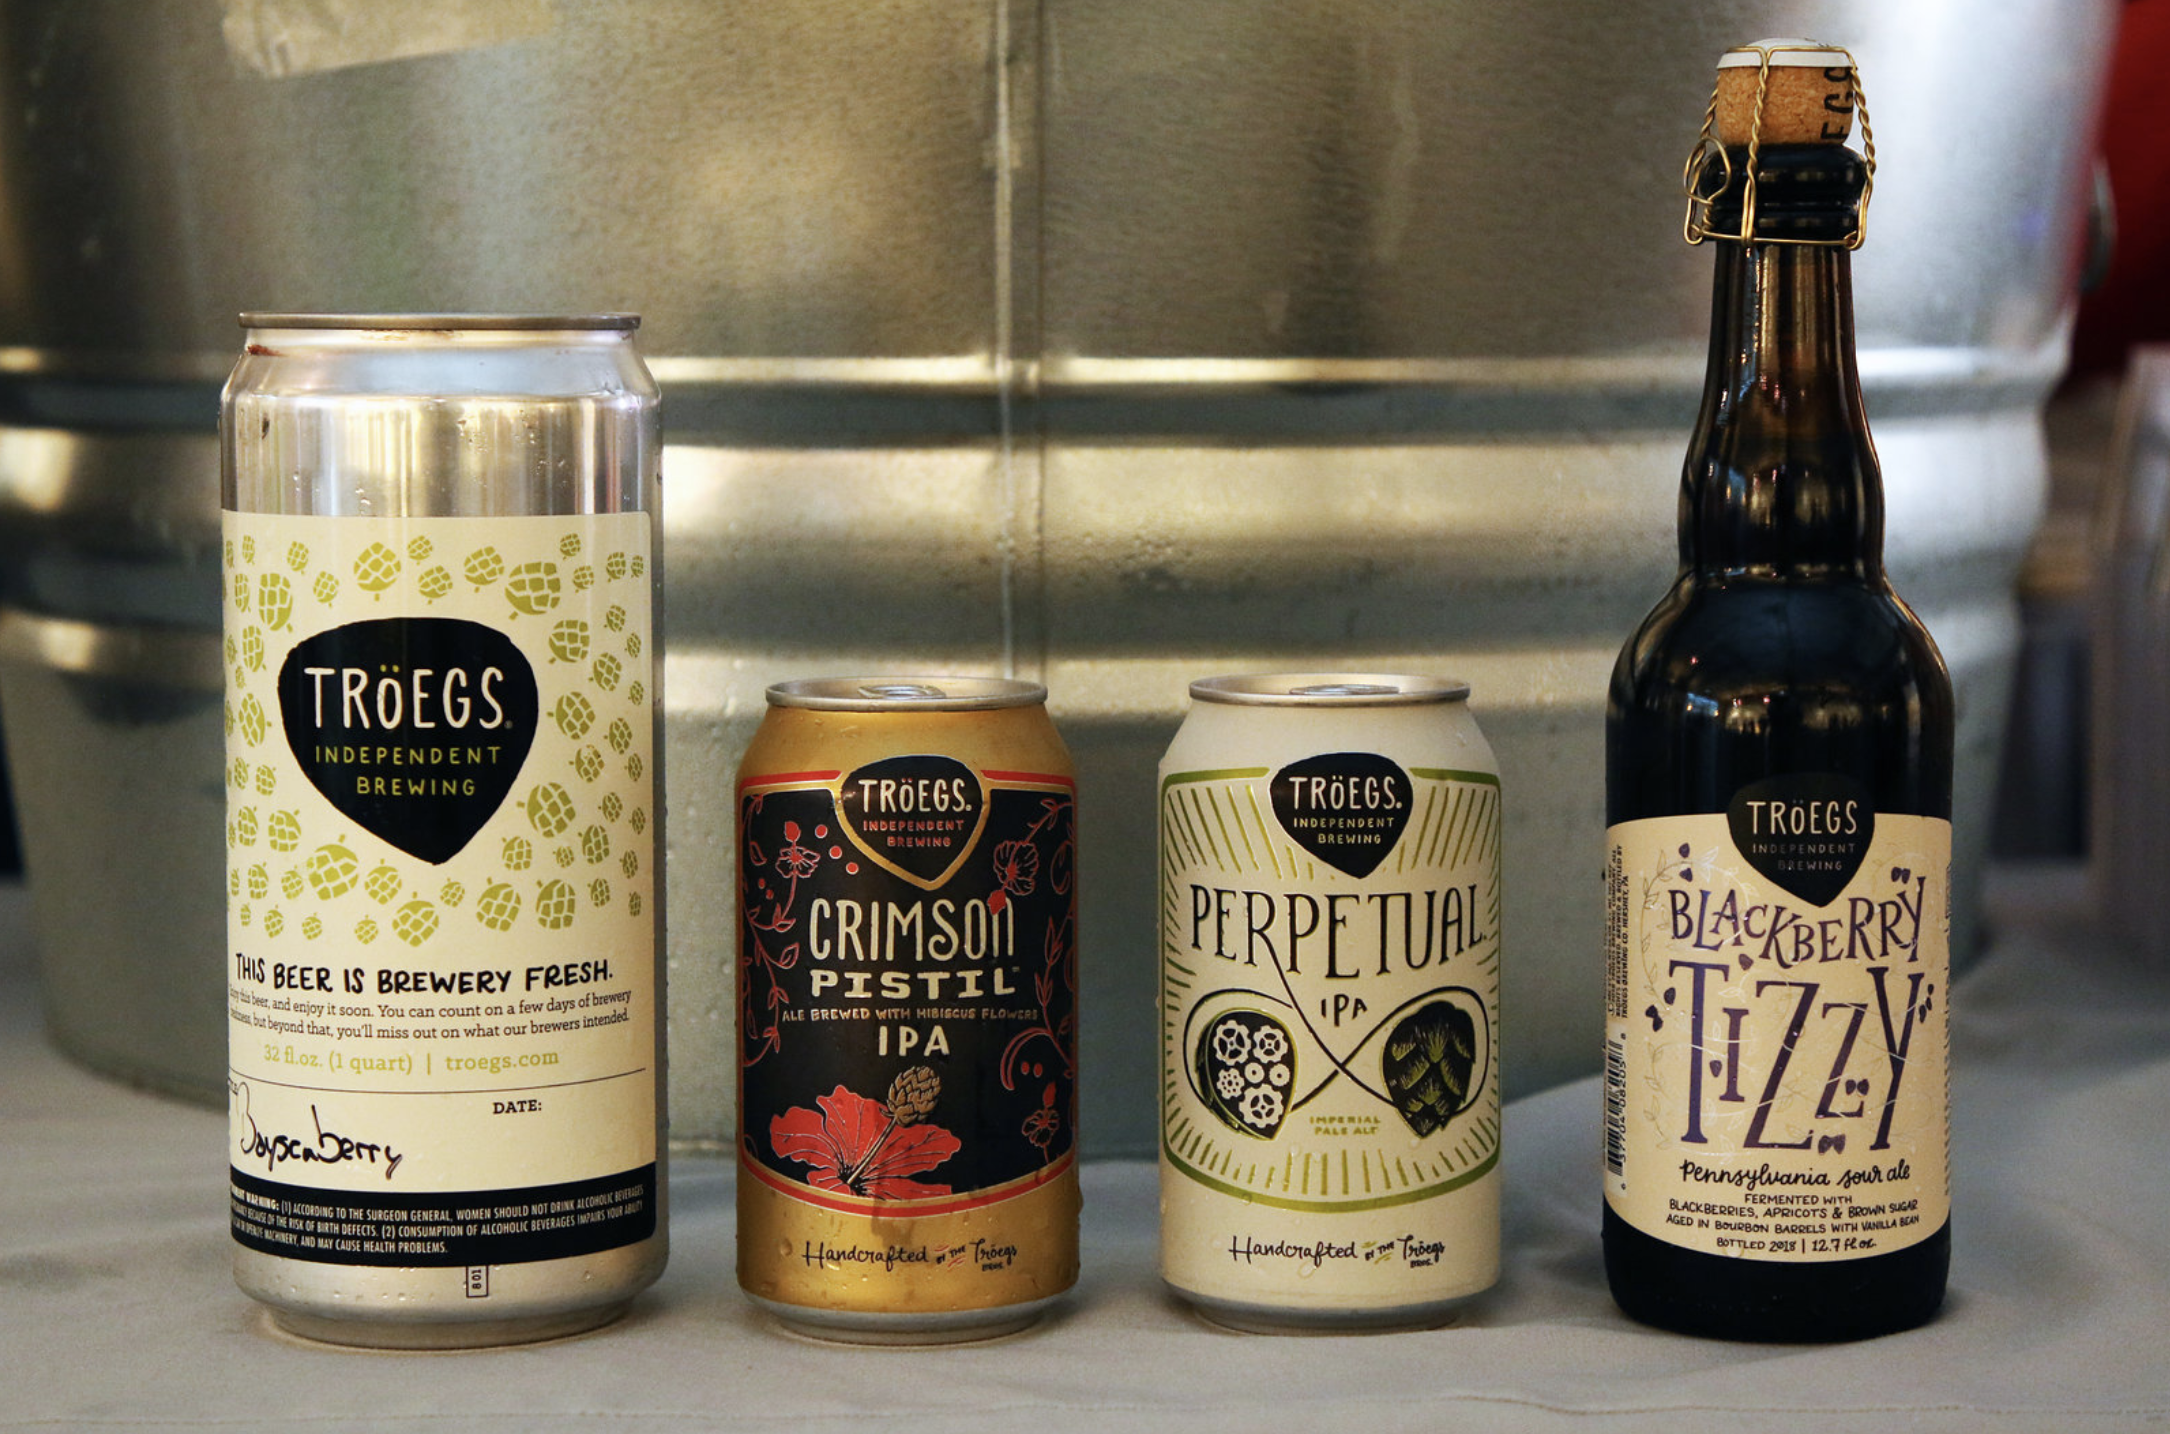 Troegs Brewing Co on deck with various beers including their Crimson Pistil IPA.